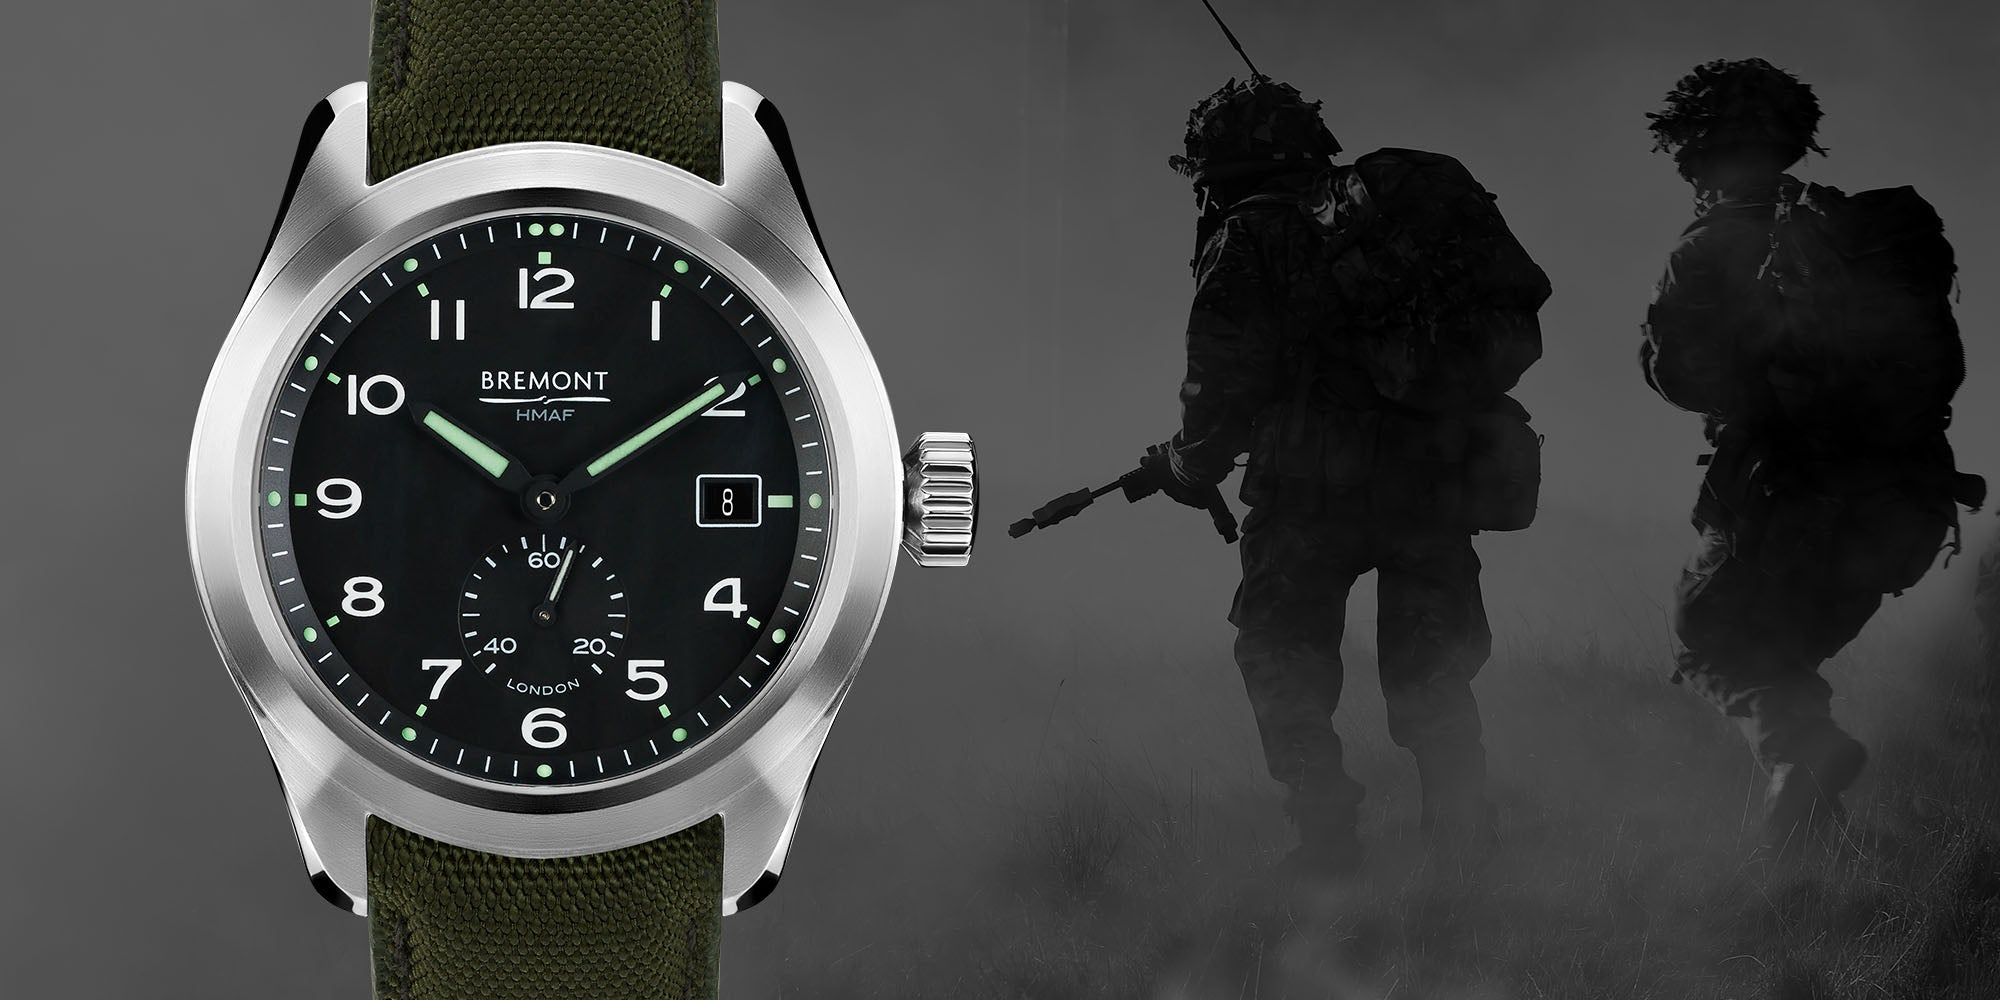 Bremont-ARMY-2019-Banner-Image 9f4251a9-3851-473a-9c1f-cd4afc138586